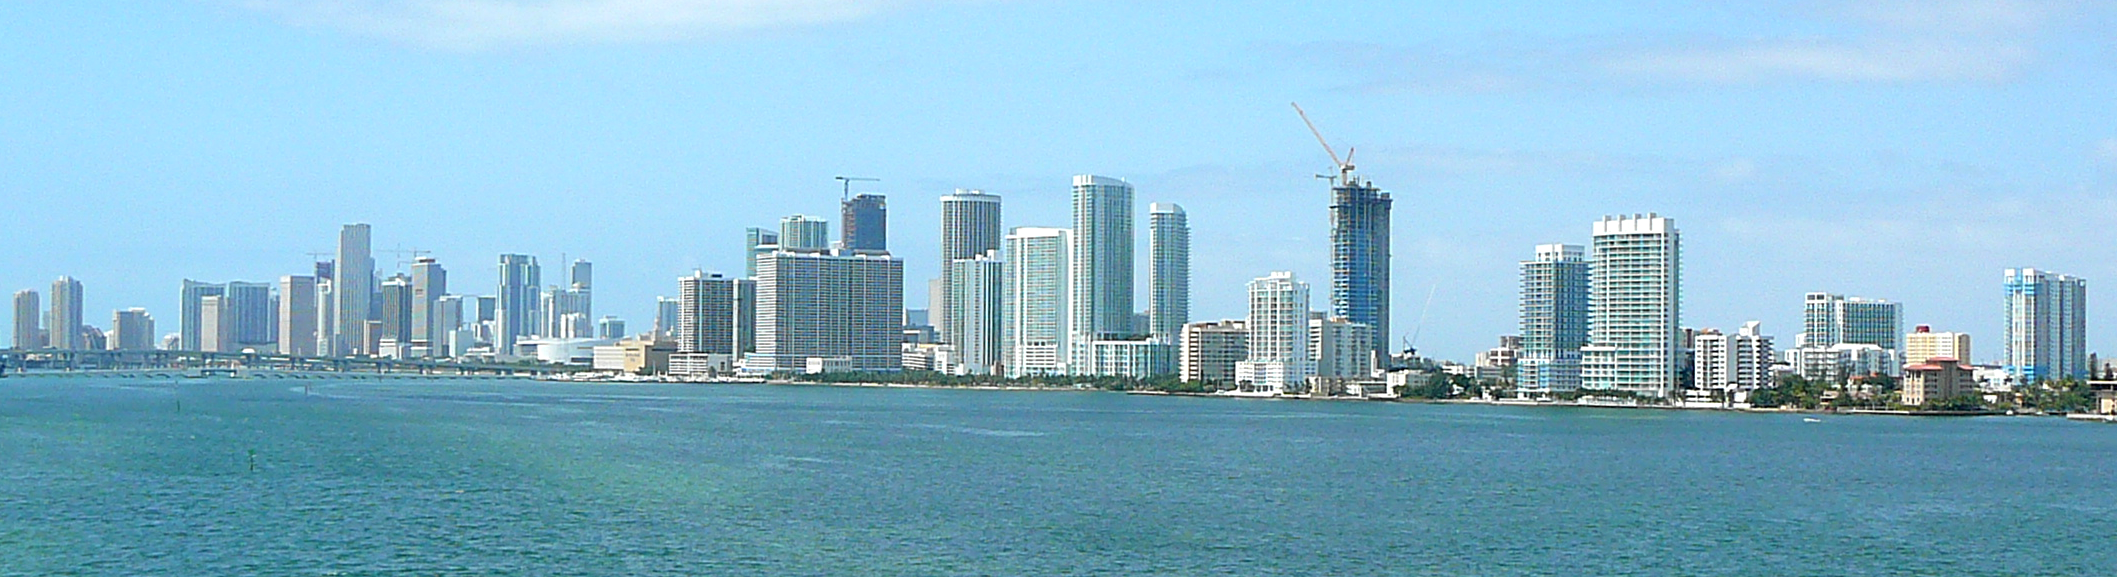 Miami_skyline_20080516.png